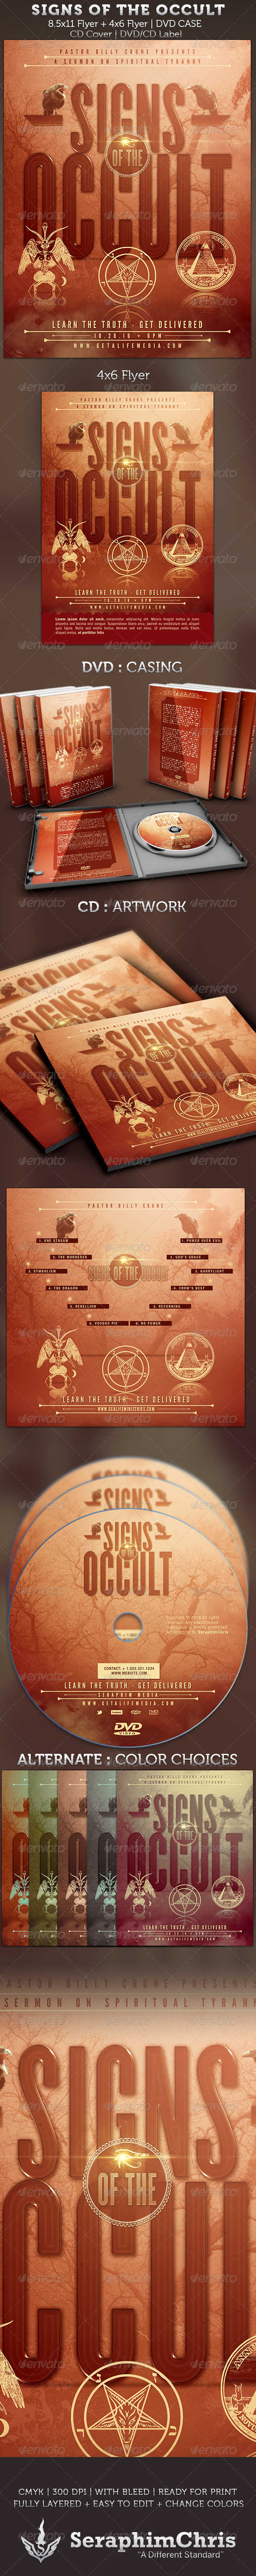 Signs of the Occult: Church Flyer and DVD Template - Church Flyers